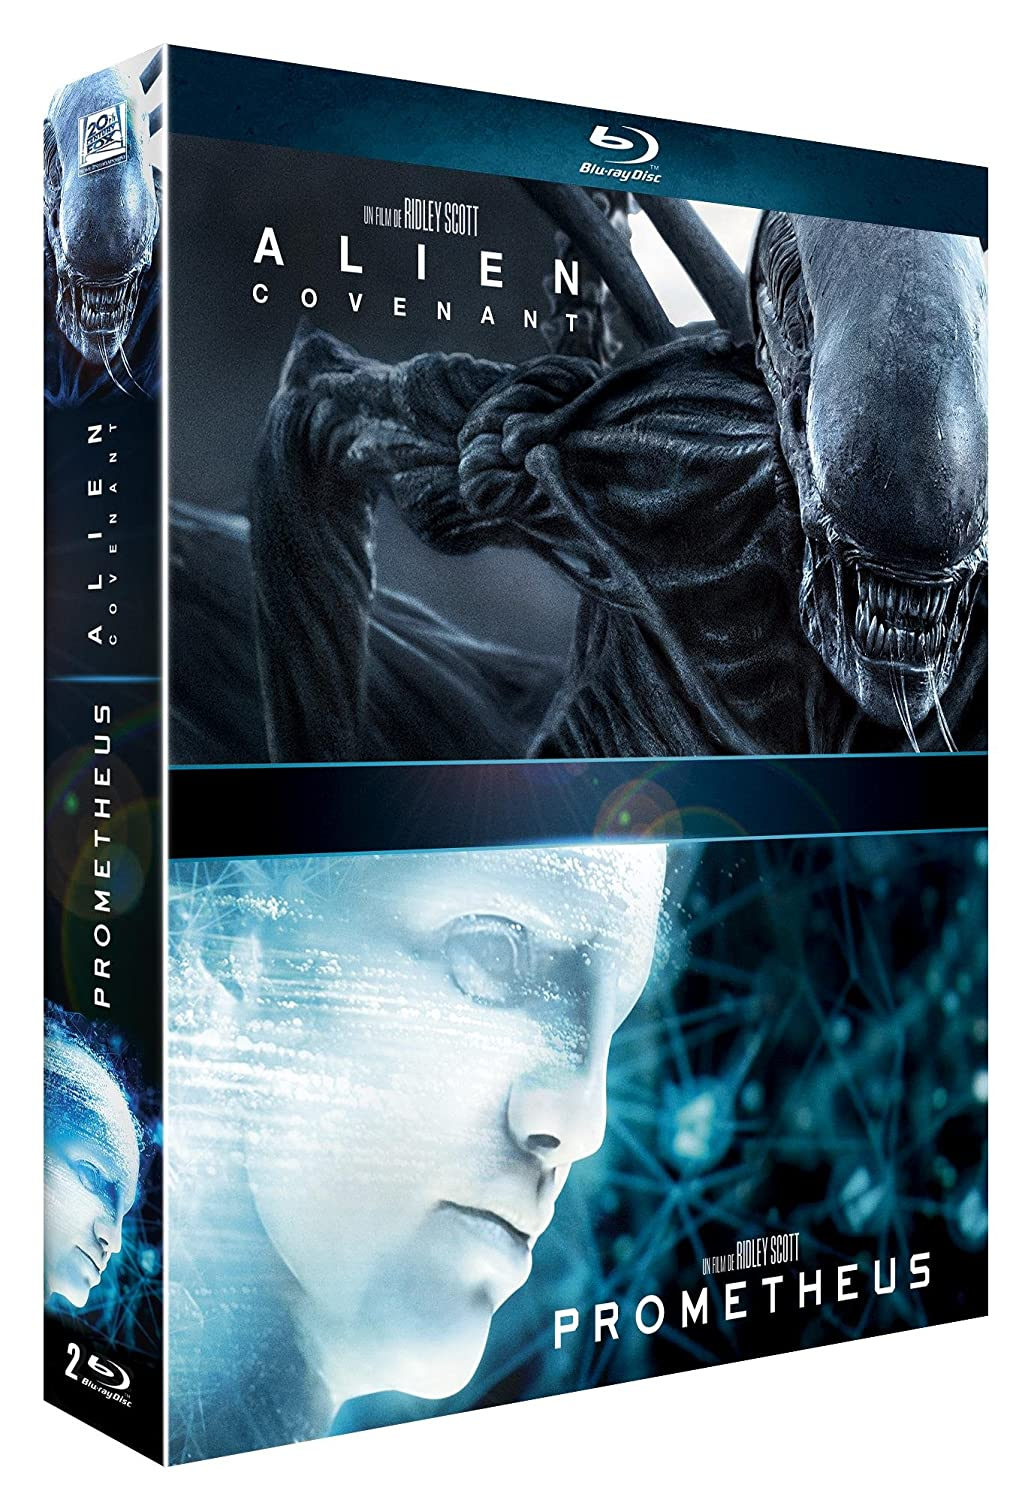 Alien : Covenant + Prometheus [Francia] [Blu-ray]: Amazon.es: Michael Fassbender, Katherine Waterston, Billy Crudup, Noomi Rapace, Charlize Theron, Guy Pearce, Ridley Scott, Michael Fassbender, Katherine Waterston: Cine y Series TV